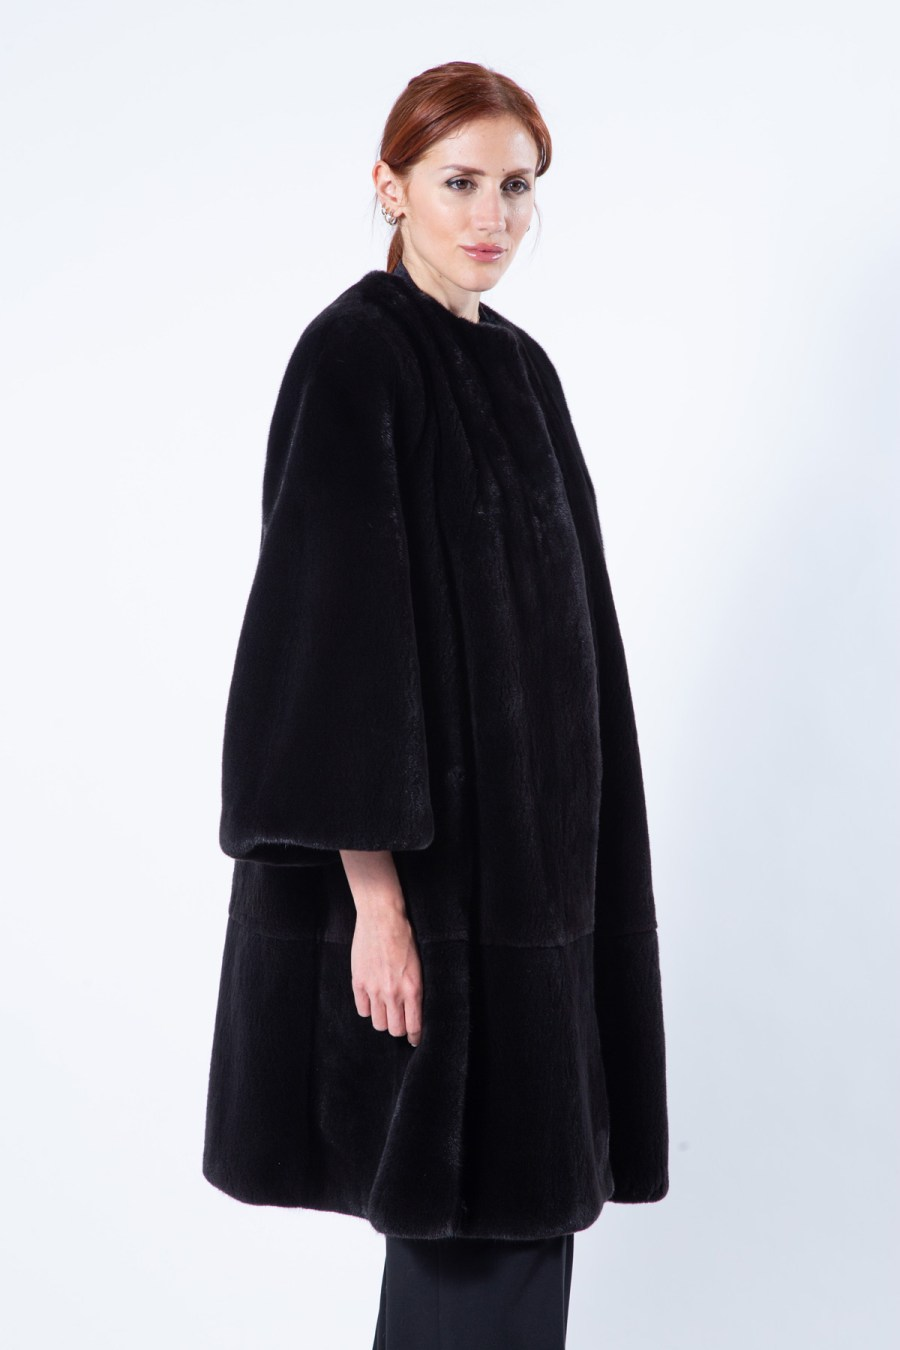 Blackglama Mink Coat with chanel collar | Шуба из норки Blackglama с воротником шанель - Sarigianni Furs